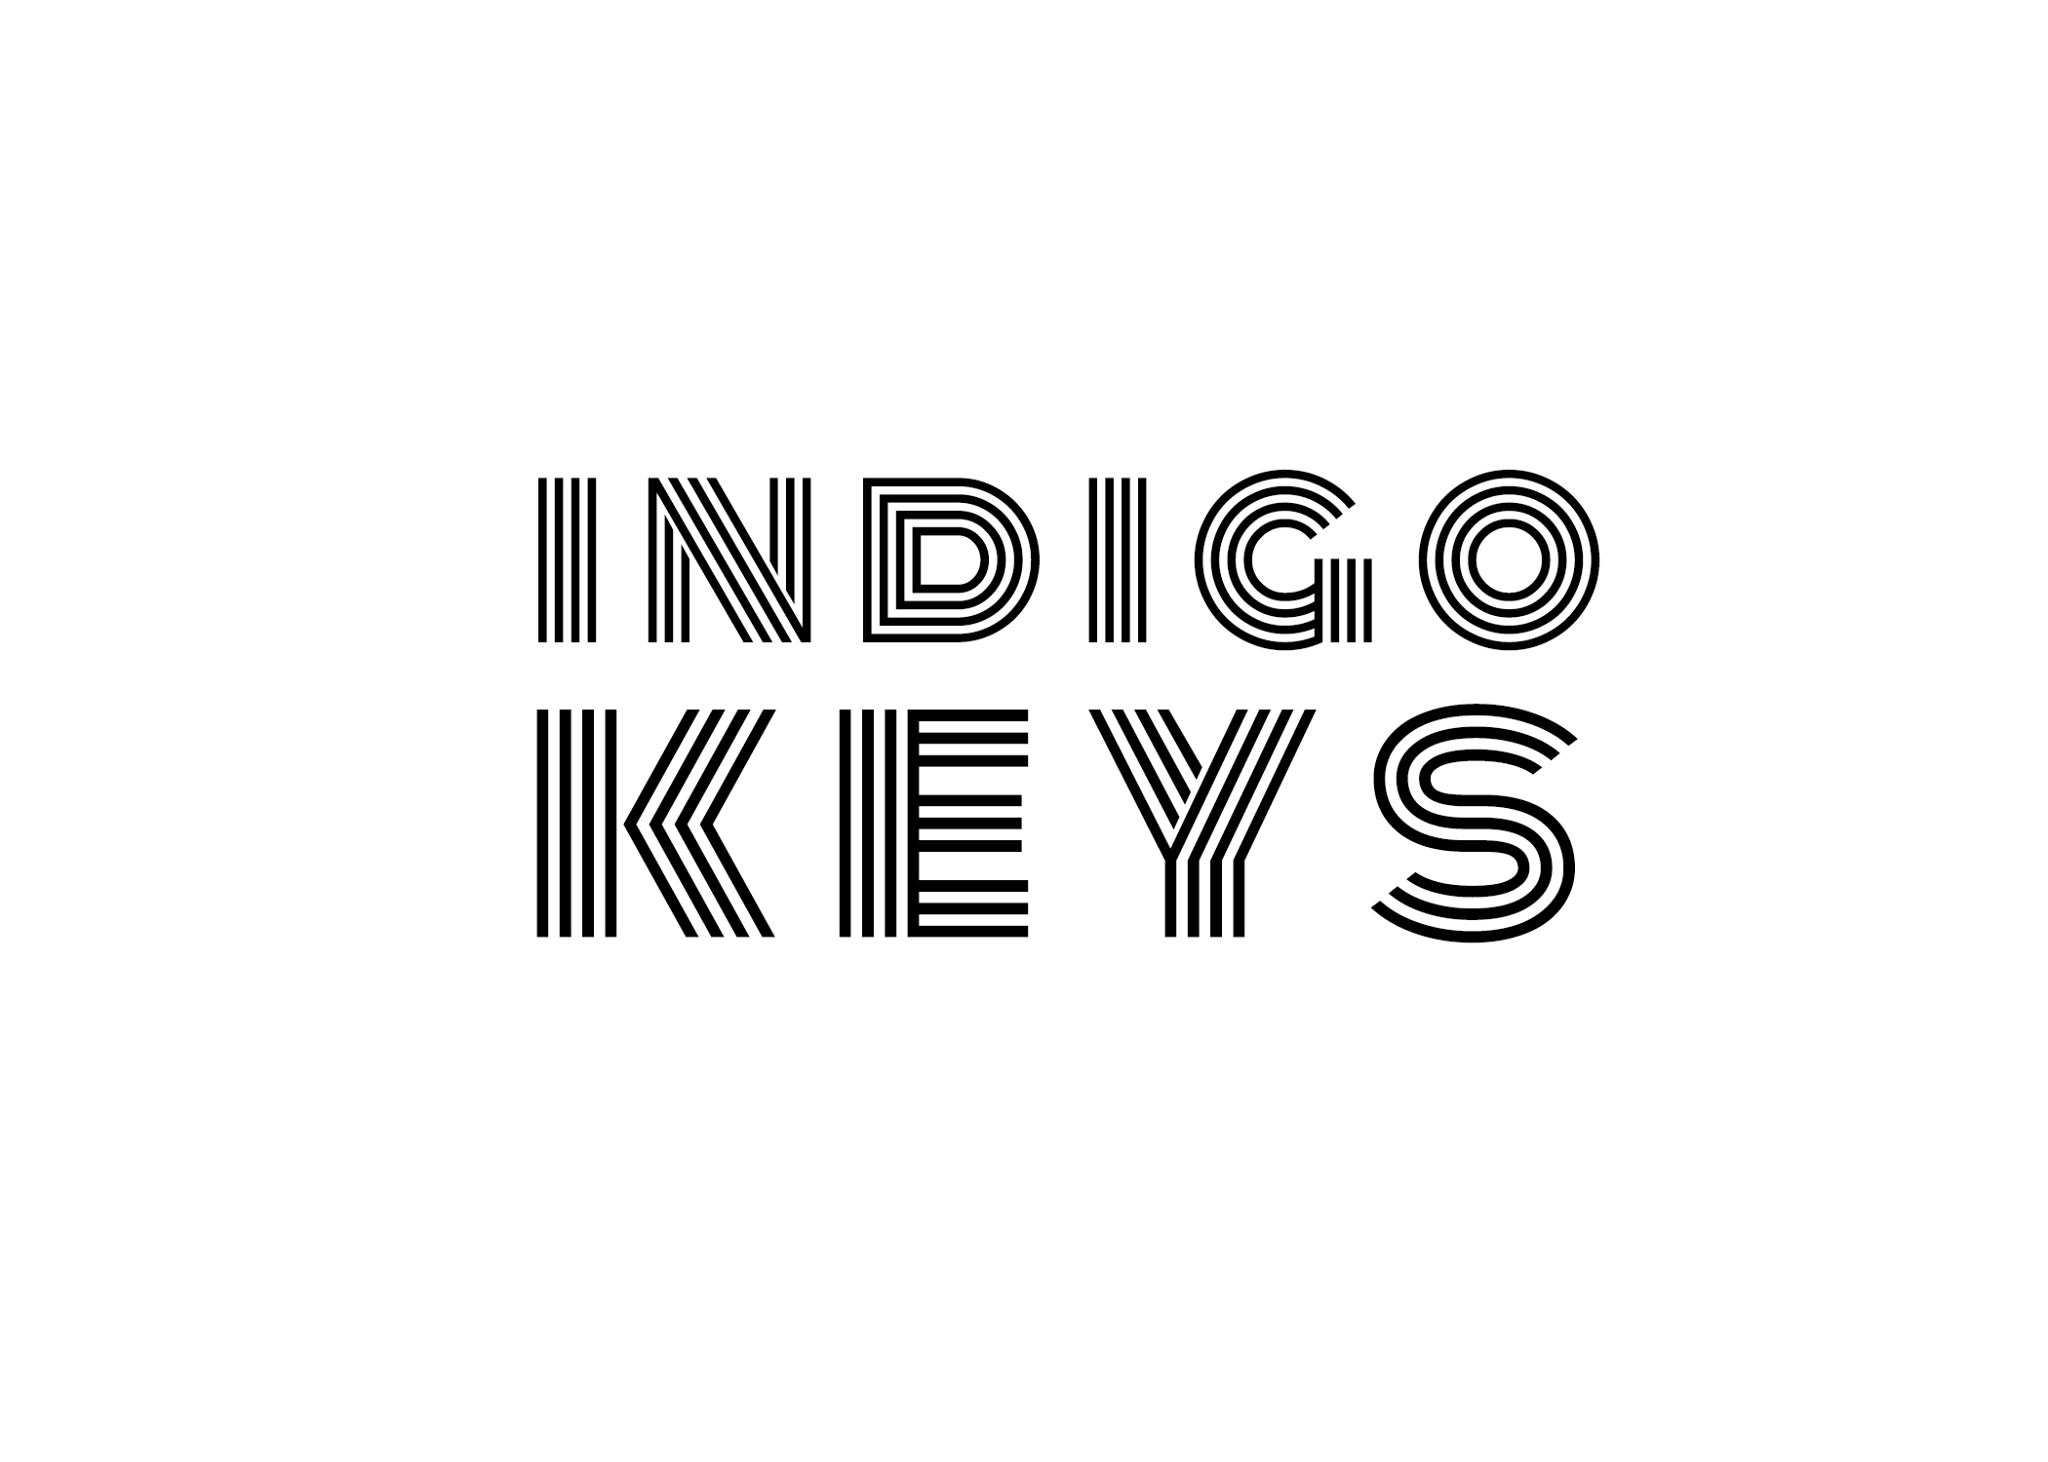 Indigo Keys cover photo.png